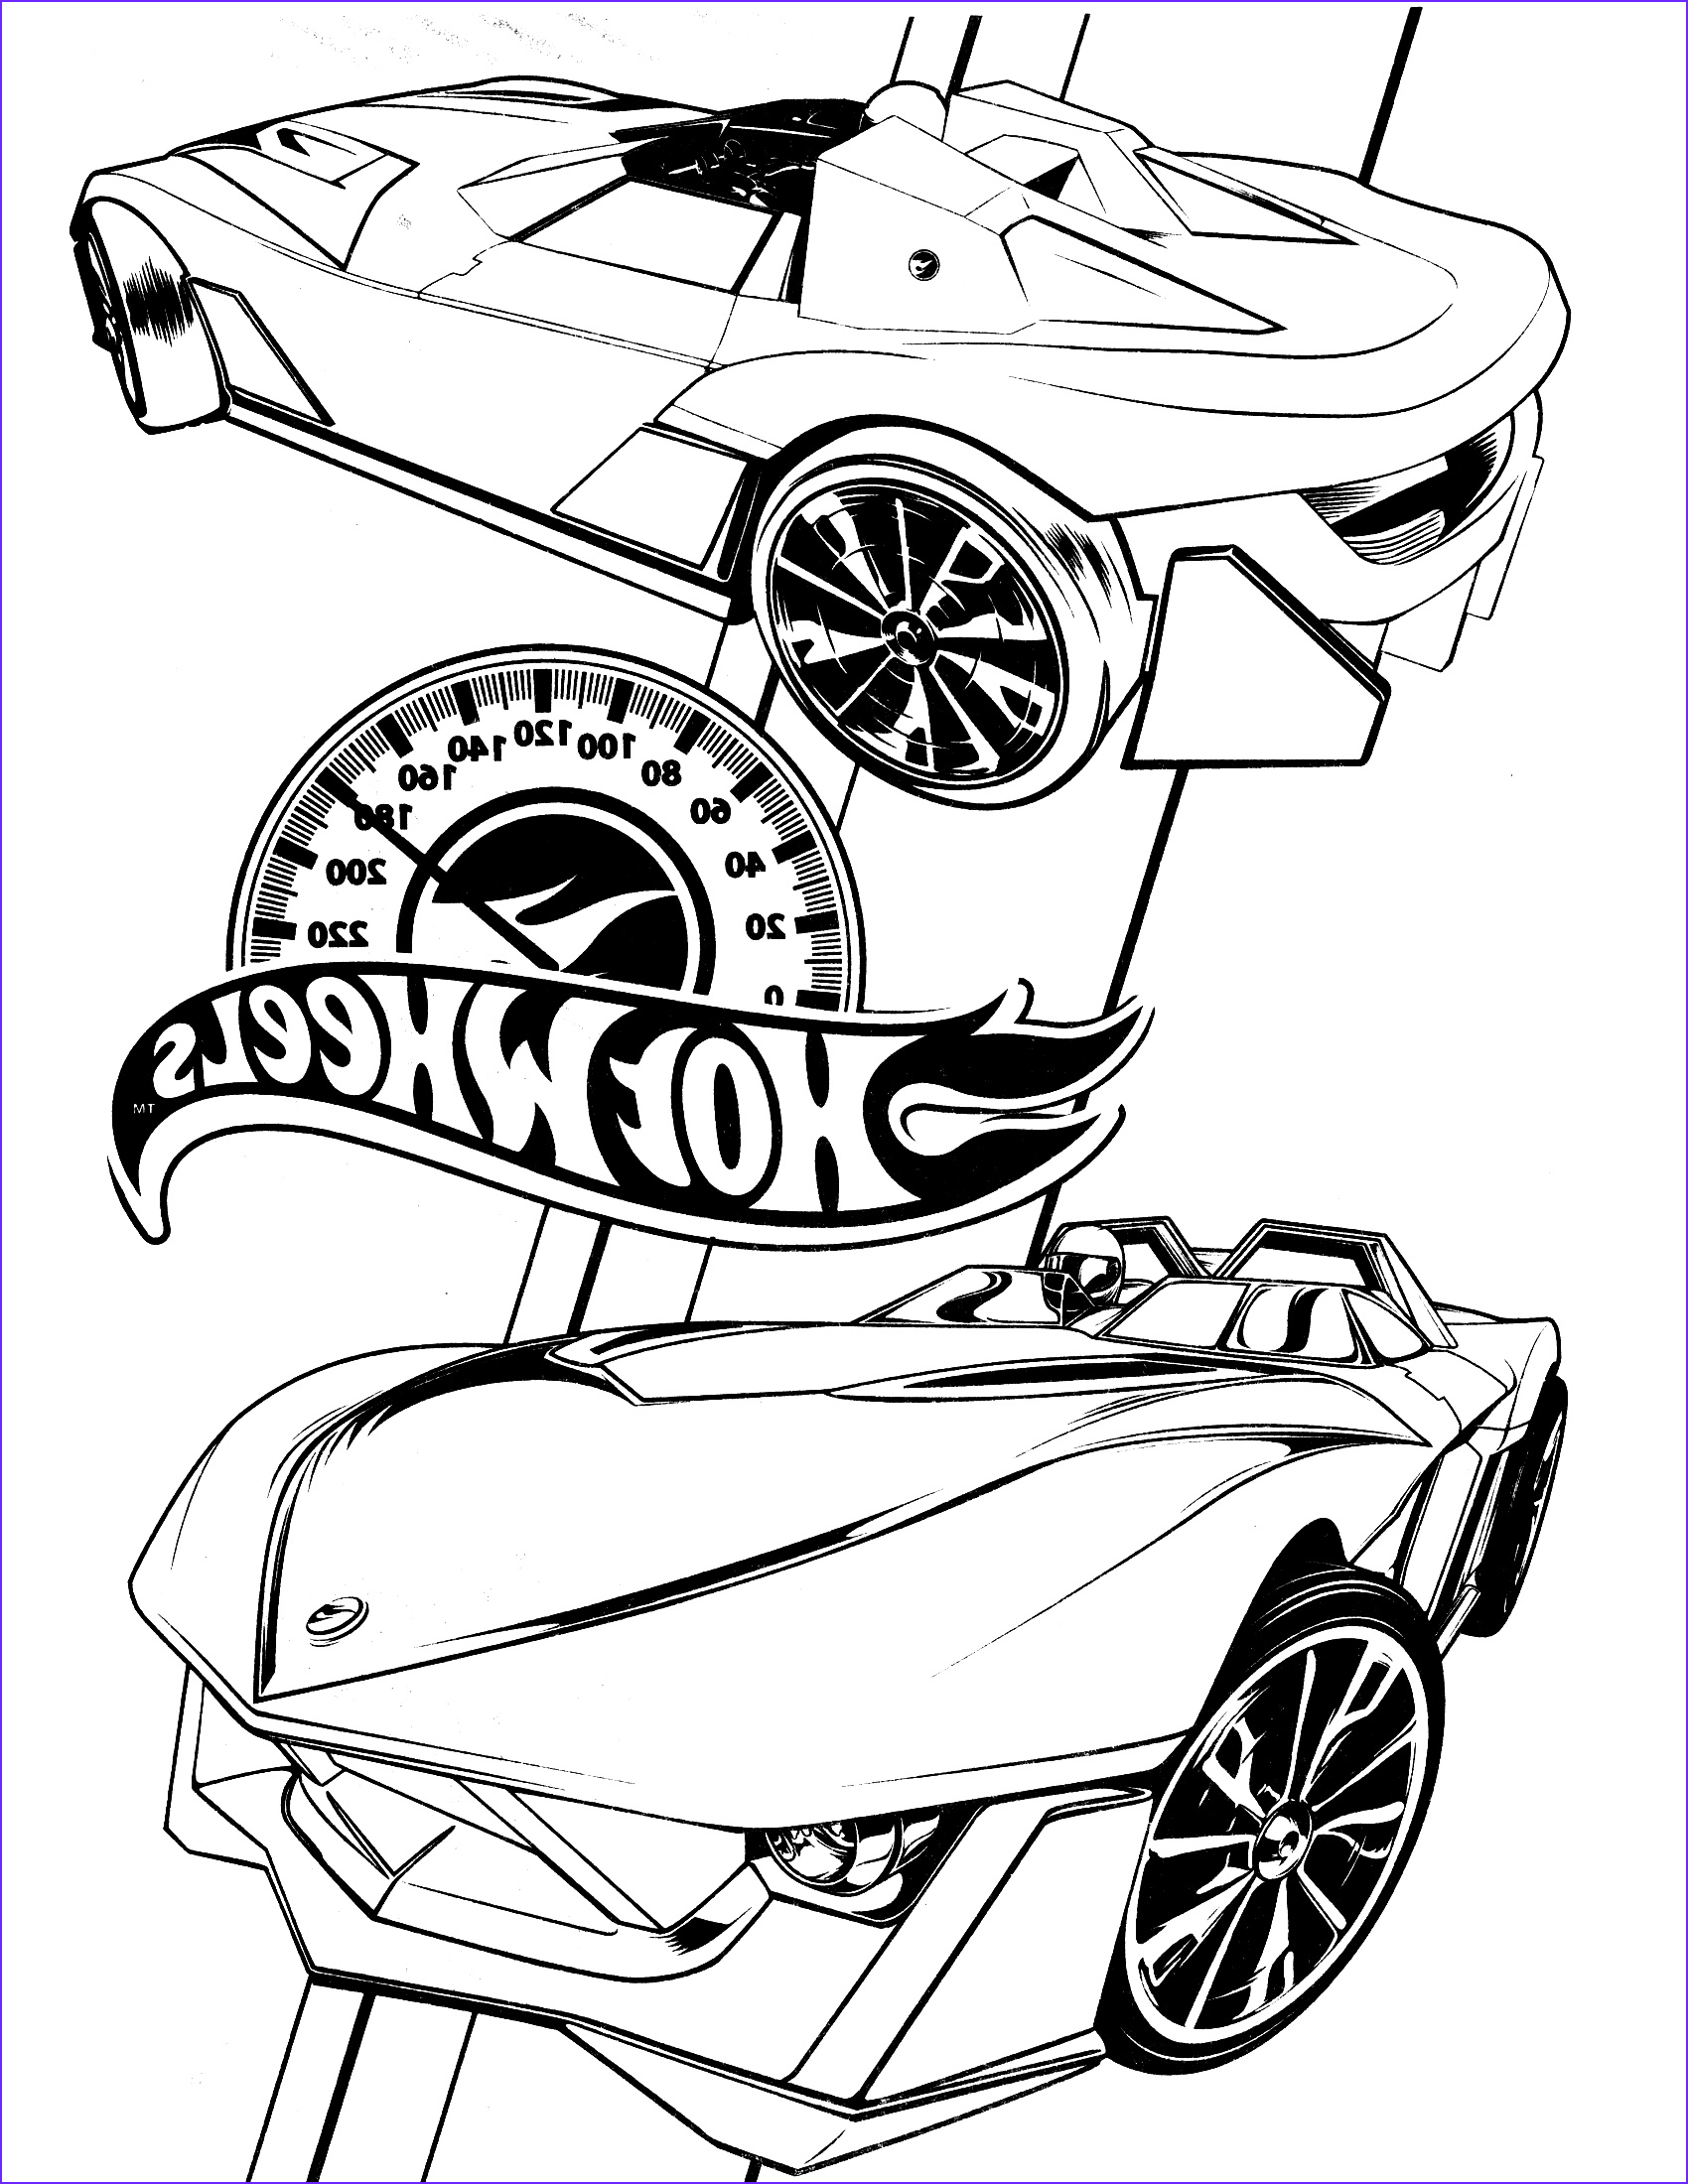 Hot Wheels Coloring Book Luxury Gallery Free Printable Hot Wheels Coloring Pages for Kids